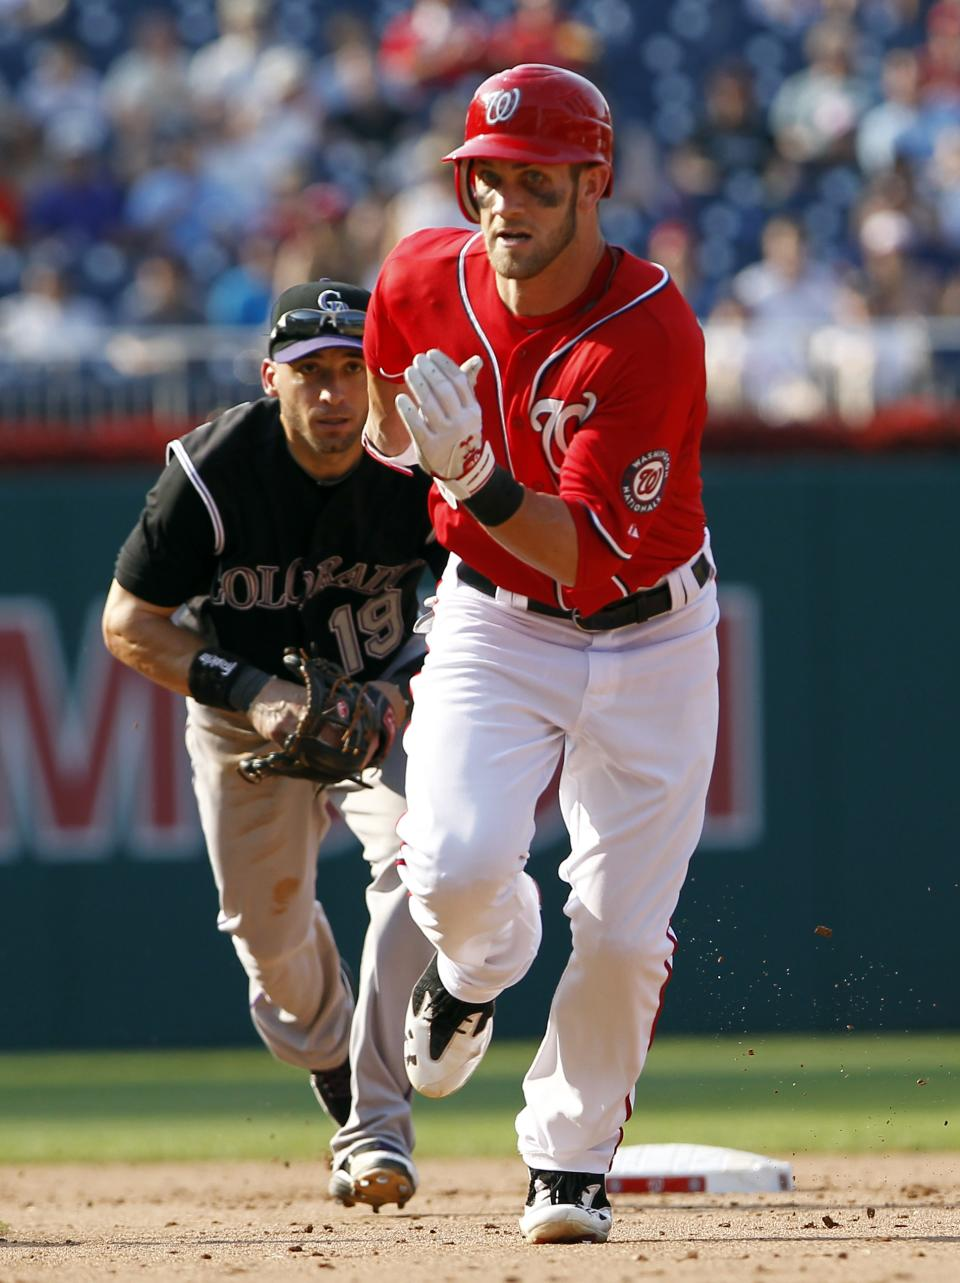 Washington Nationals' Bryce Harper is chased back to first base by Colorado Rockies second baseman Marco Scutaro (19) during the sixth inning of a baseball game Saturday, July 7, 2012 in Washington. The Nationals won 4-1. (AP Photo/Alex Brandon)